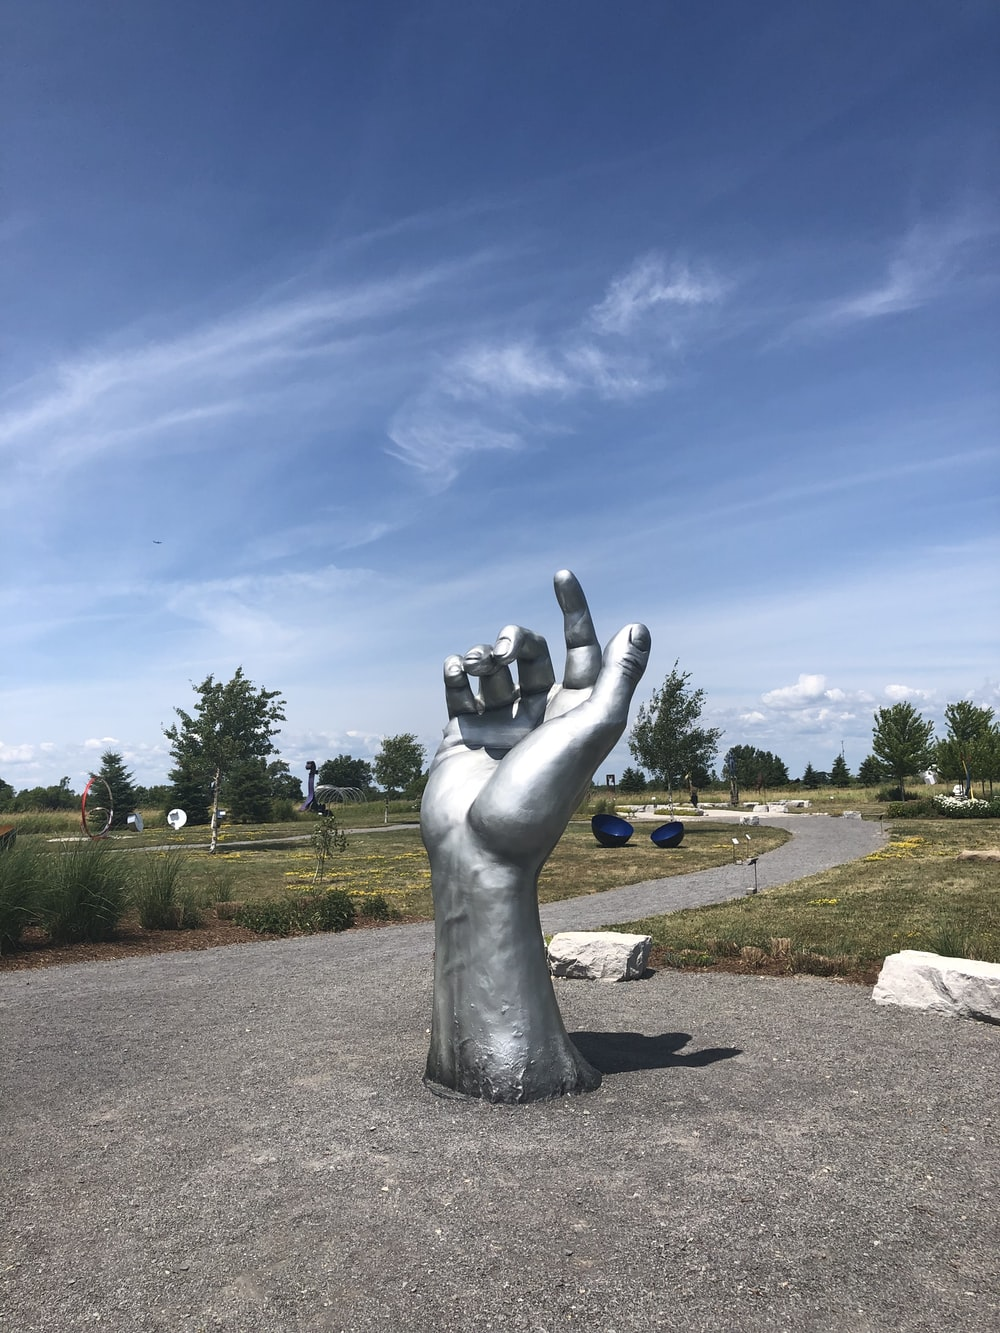 gray statue on brown soil under blue sky during daytime